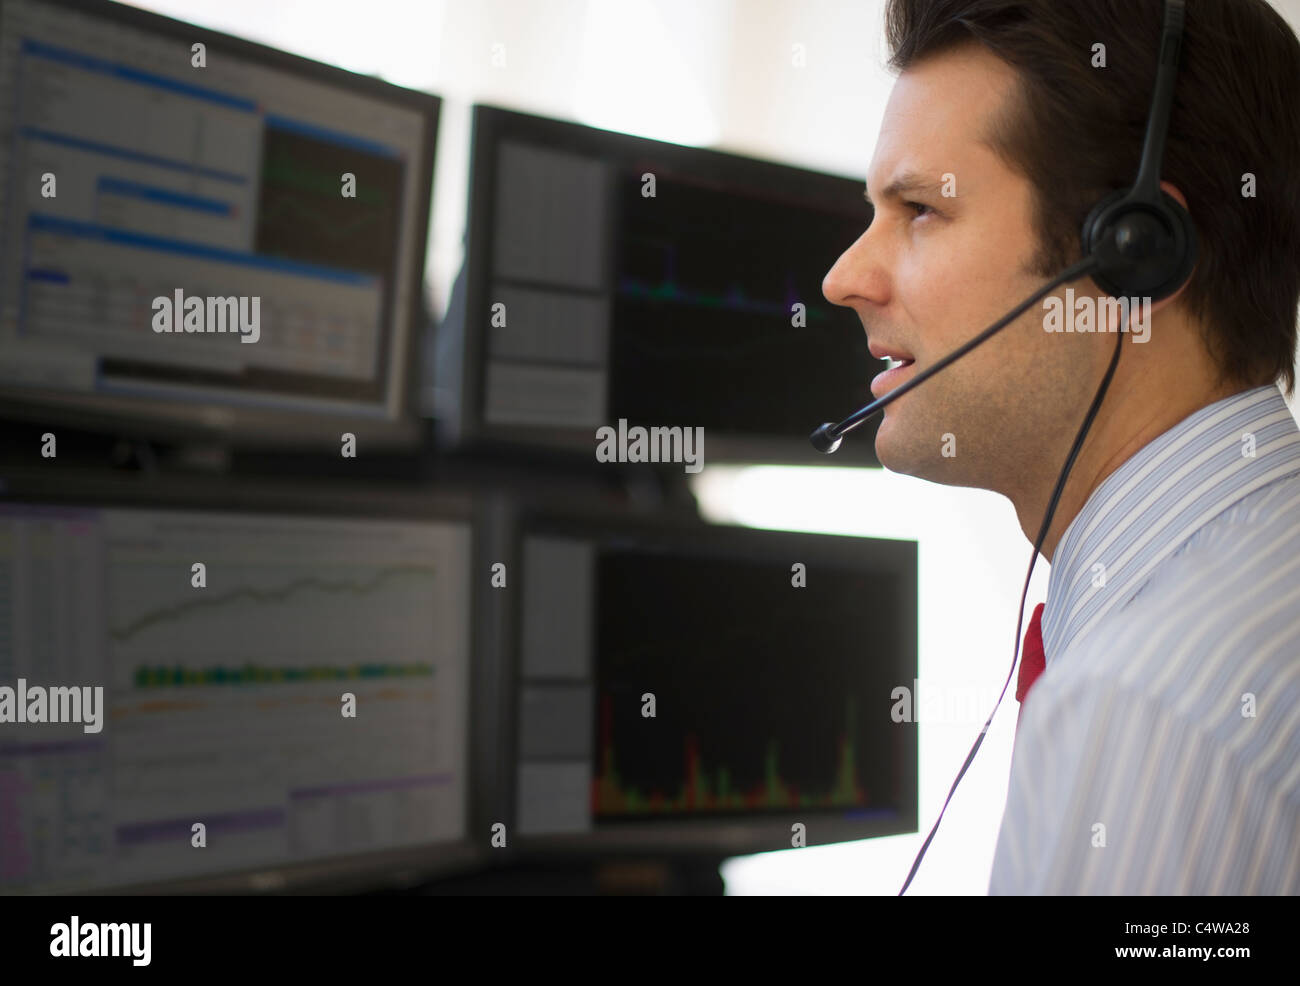 USA,New Jersey,Jersey City,financial worker analyzing data displayed on computer screen - Stock Image